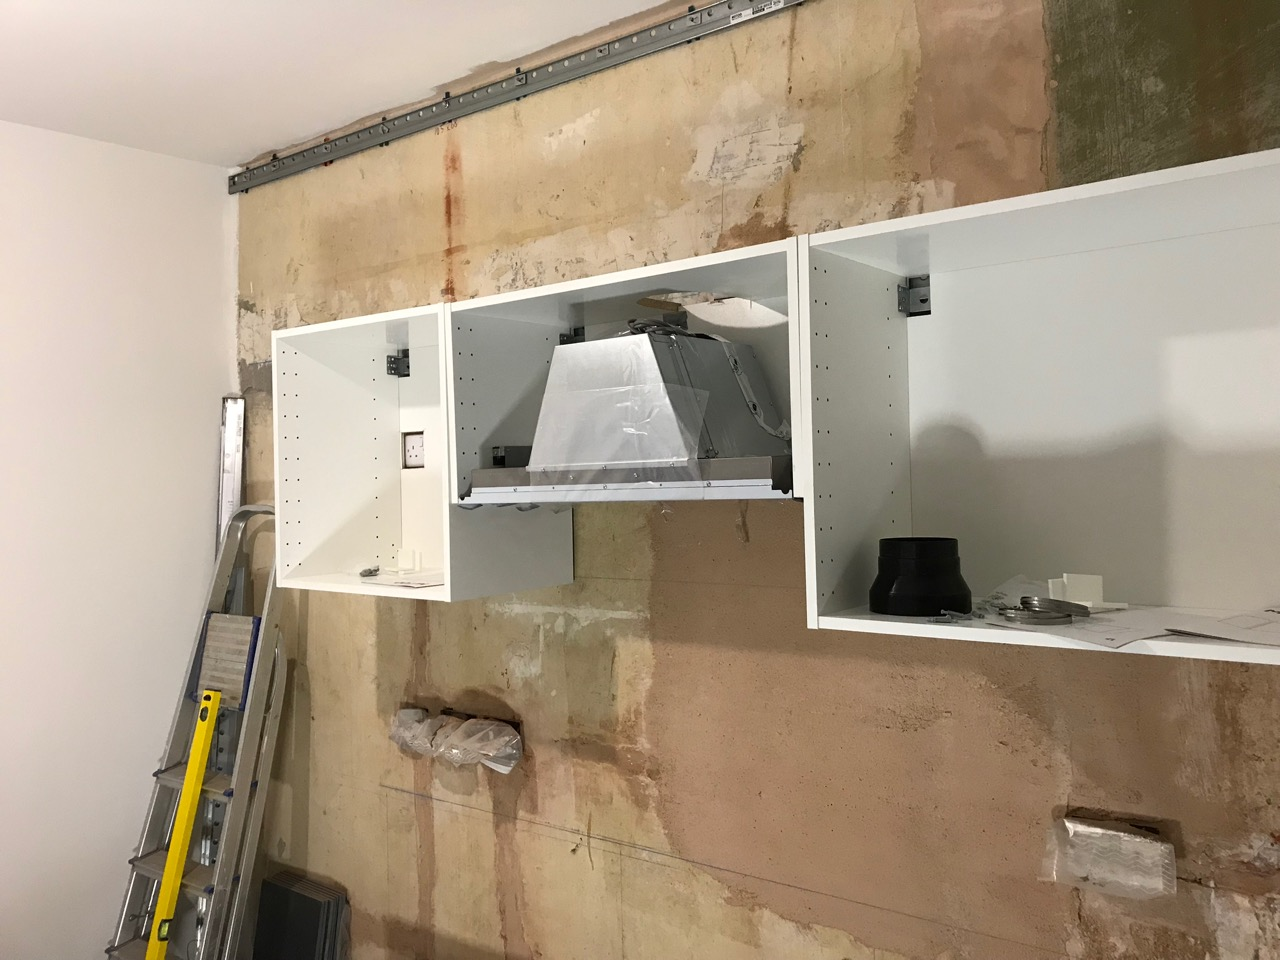 Three fitted cabinets with extractor fan